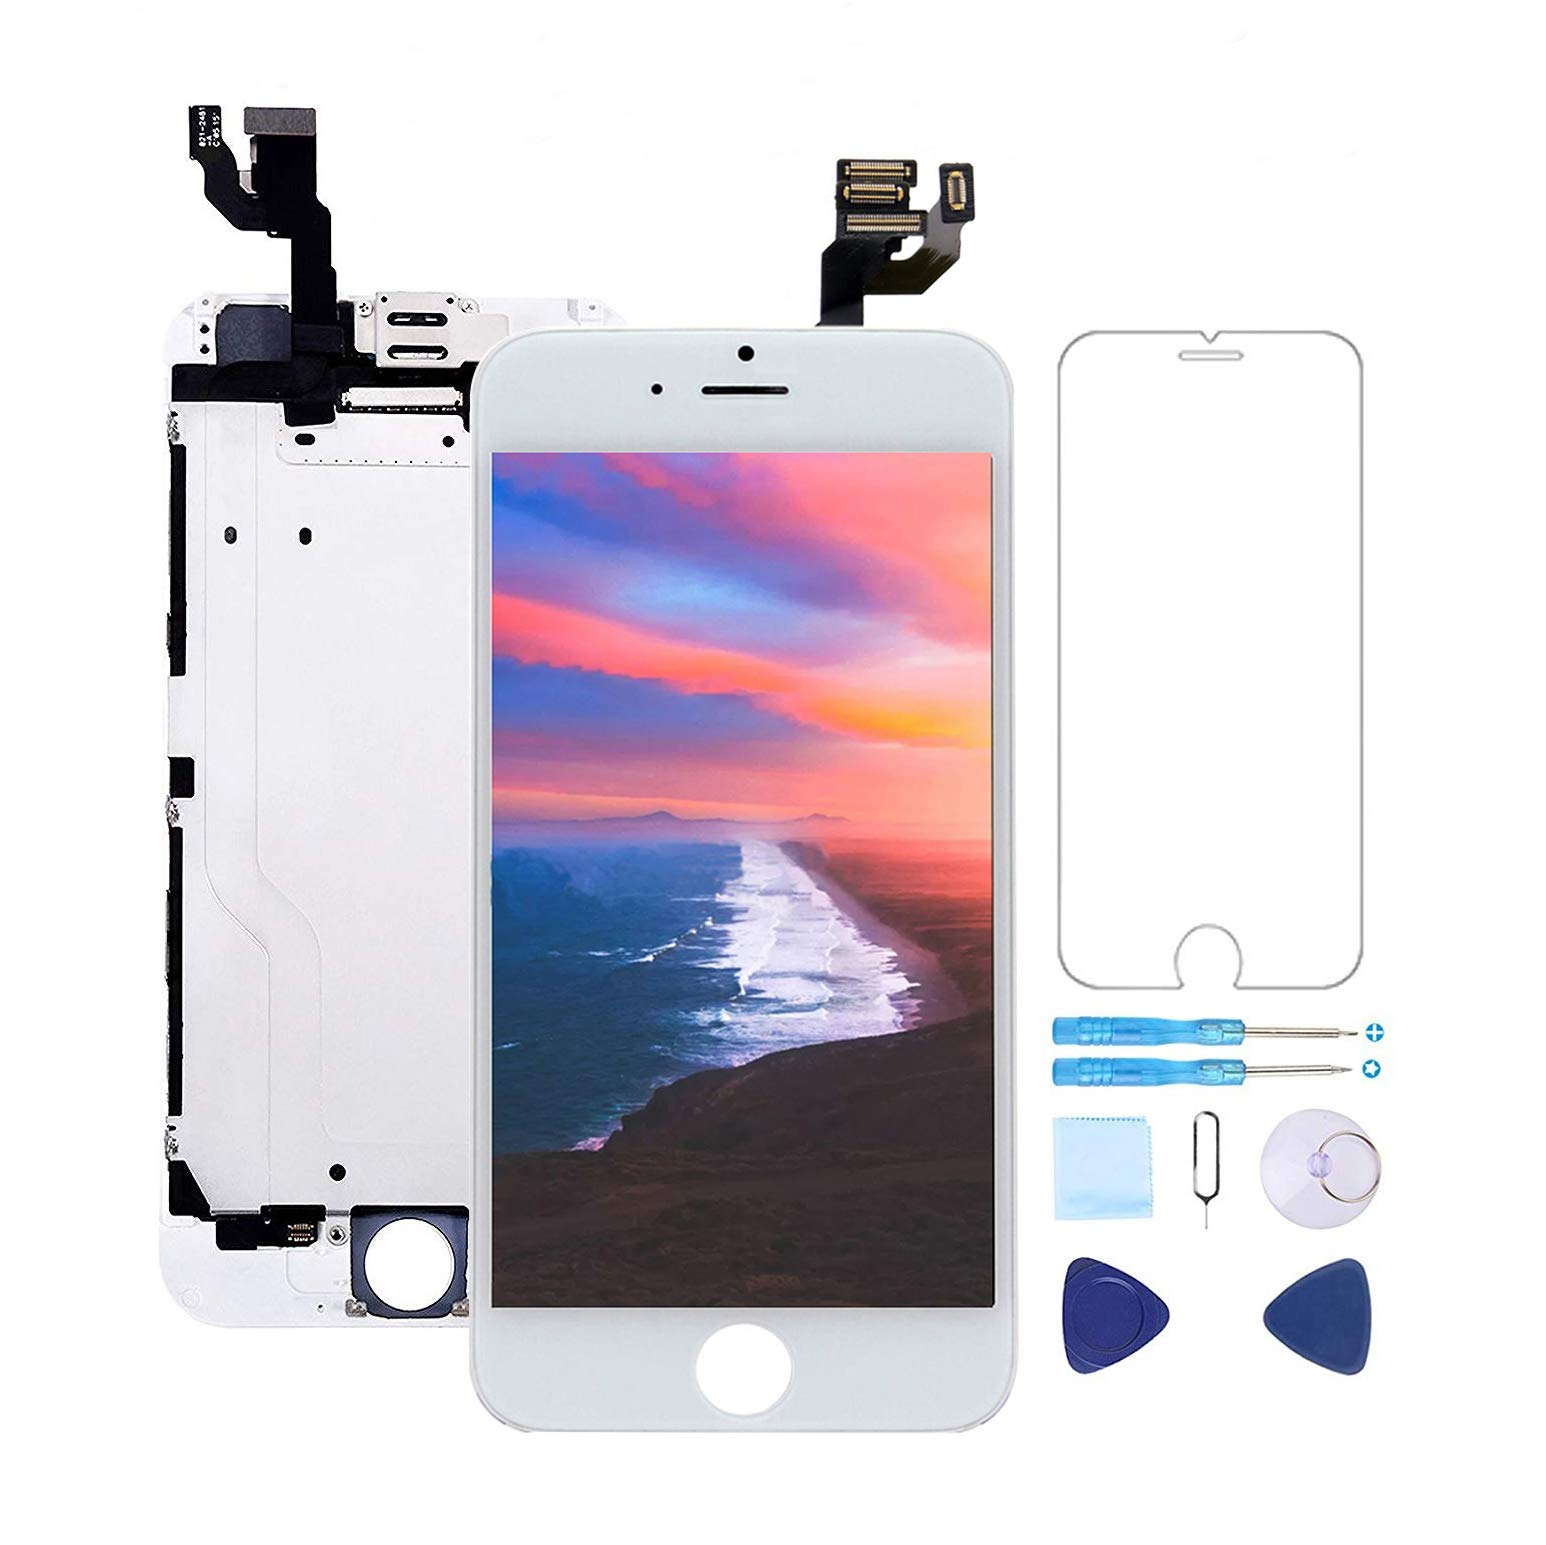 Screen Replacement for iPhone 6 Plus Screen Replacement White 5.5'' LCD Display Touch Digitizer Frame Assembly with Proximity Sensor,Ear Speaker,Front Camera,Screen Protector,Repair Tools kit White